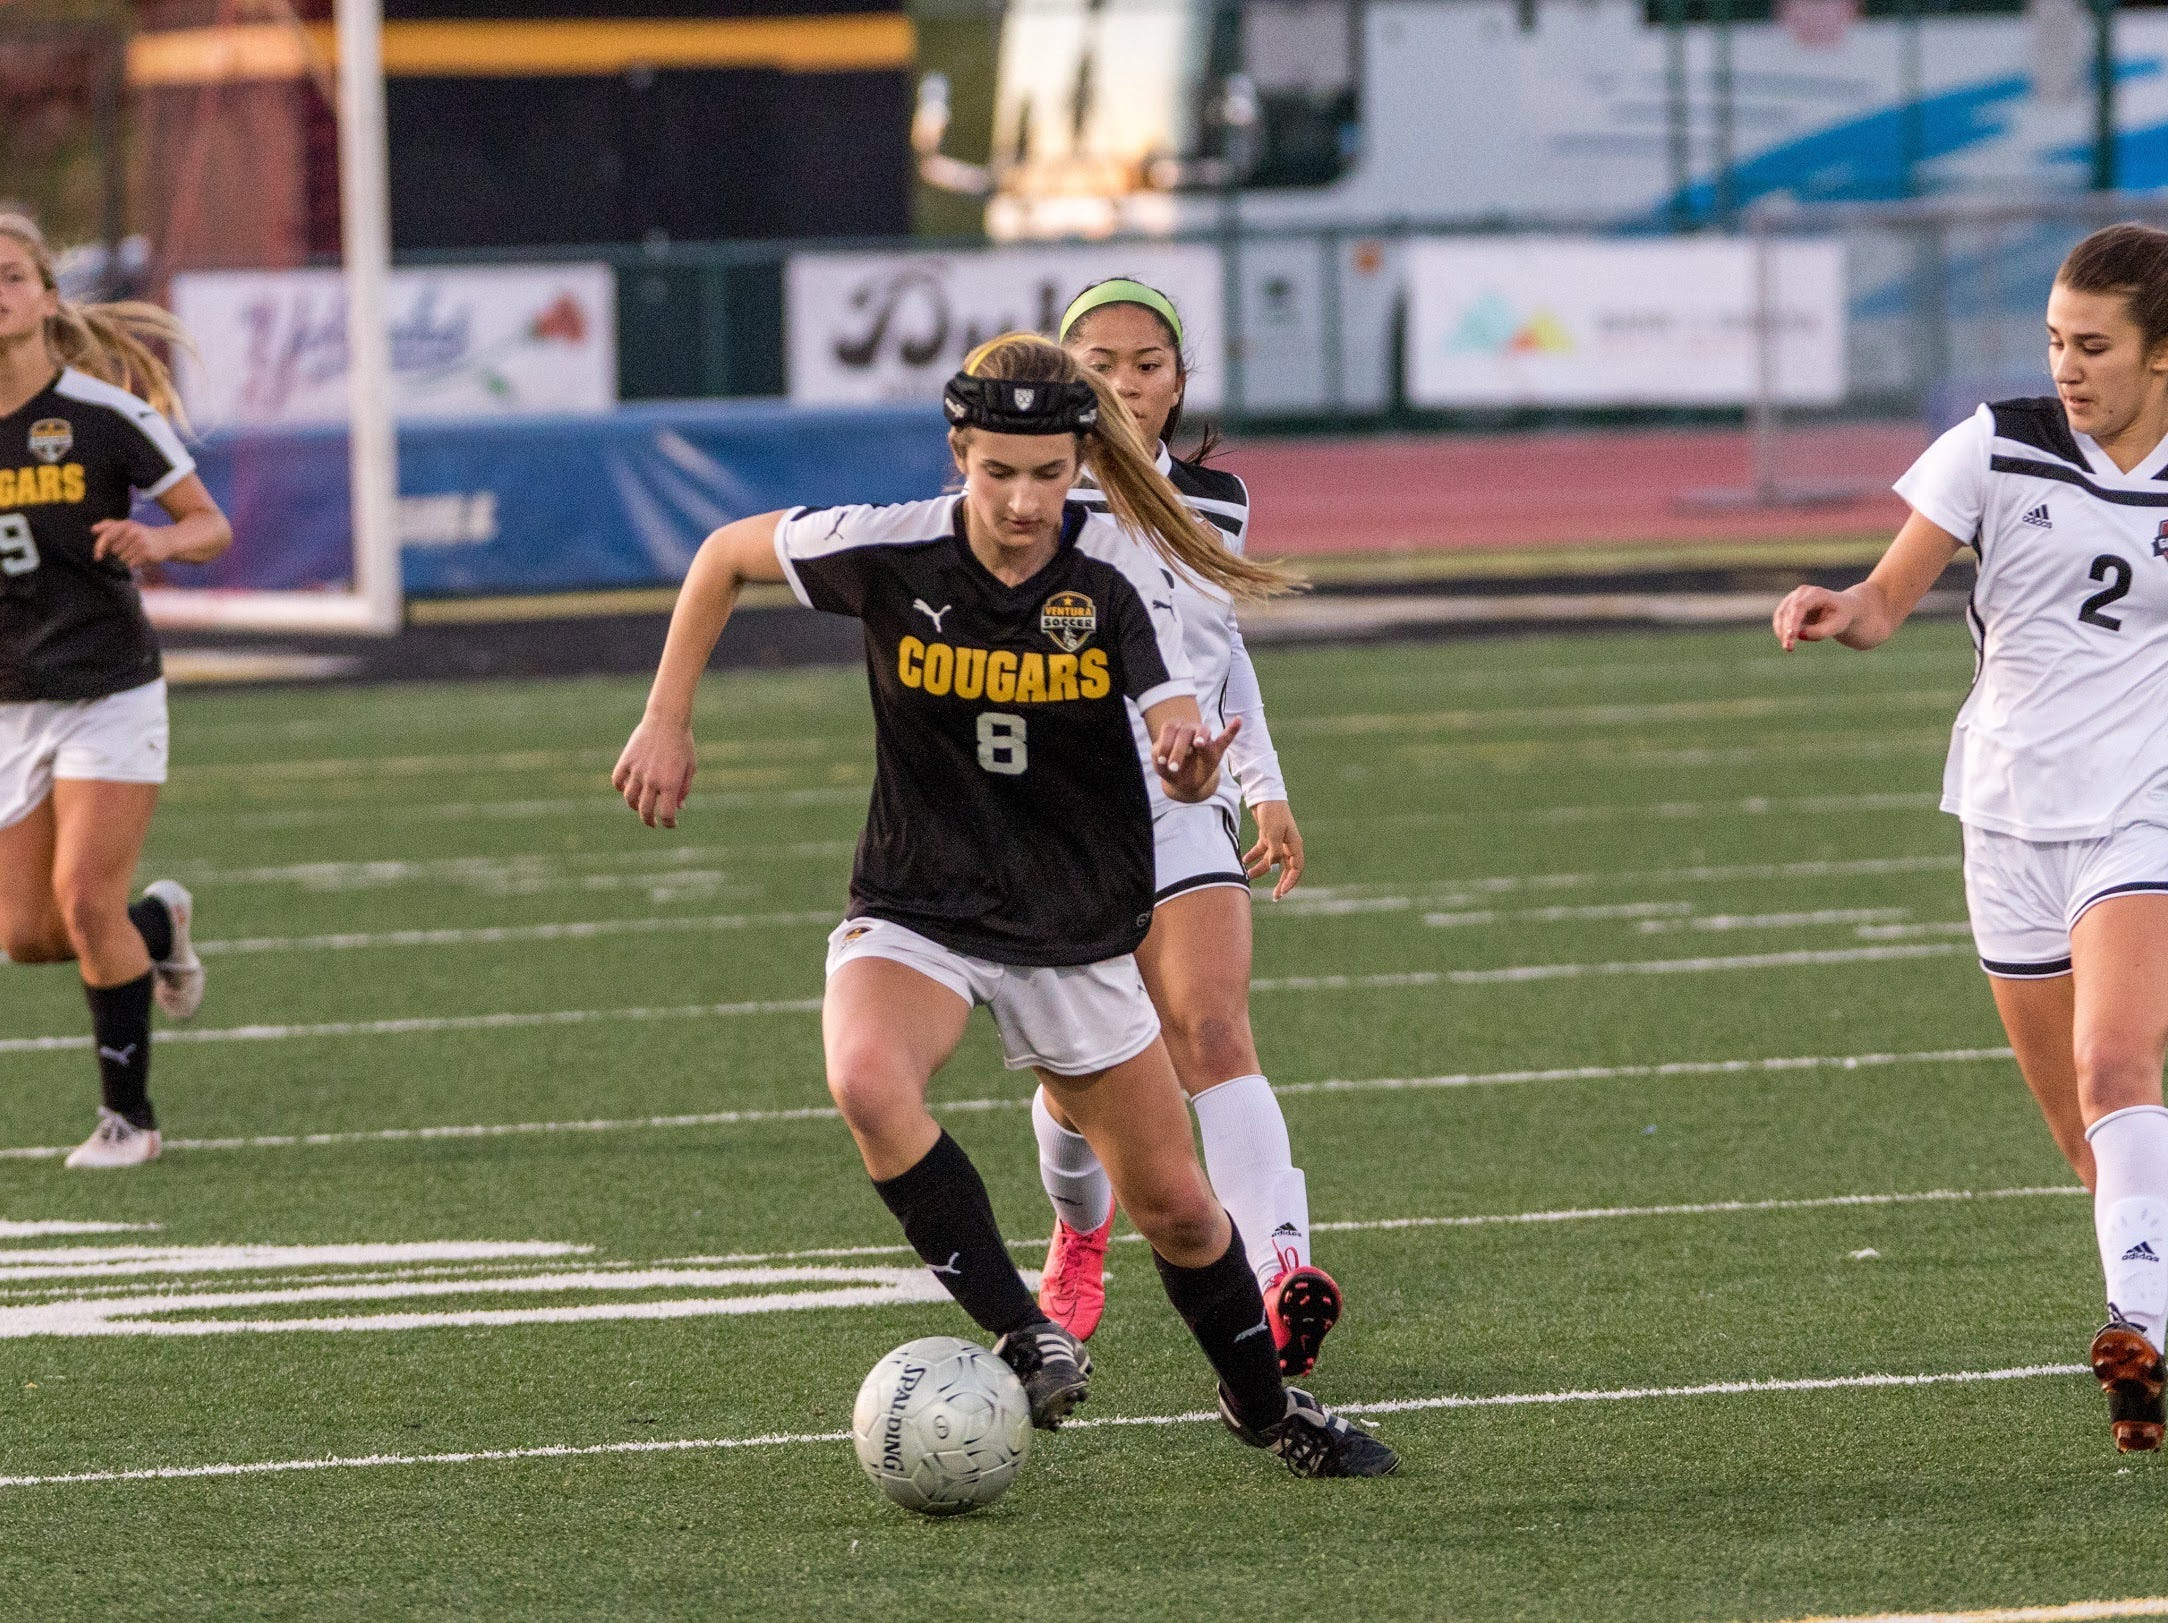 Senior Alex Kwasny dribbles upfield during Ventura's 4-1 win over visiting Glendora on Friday in the second round of the CIF-Southern Section Division 2 girls soccer playoffs at Larrabee Stadium.